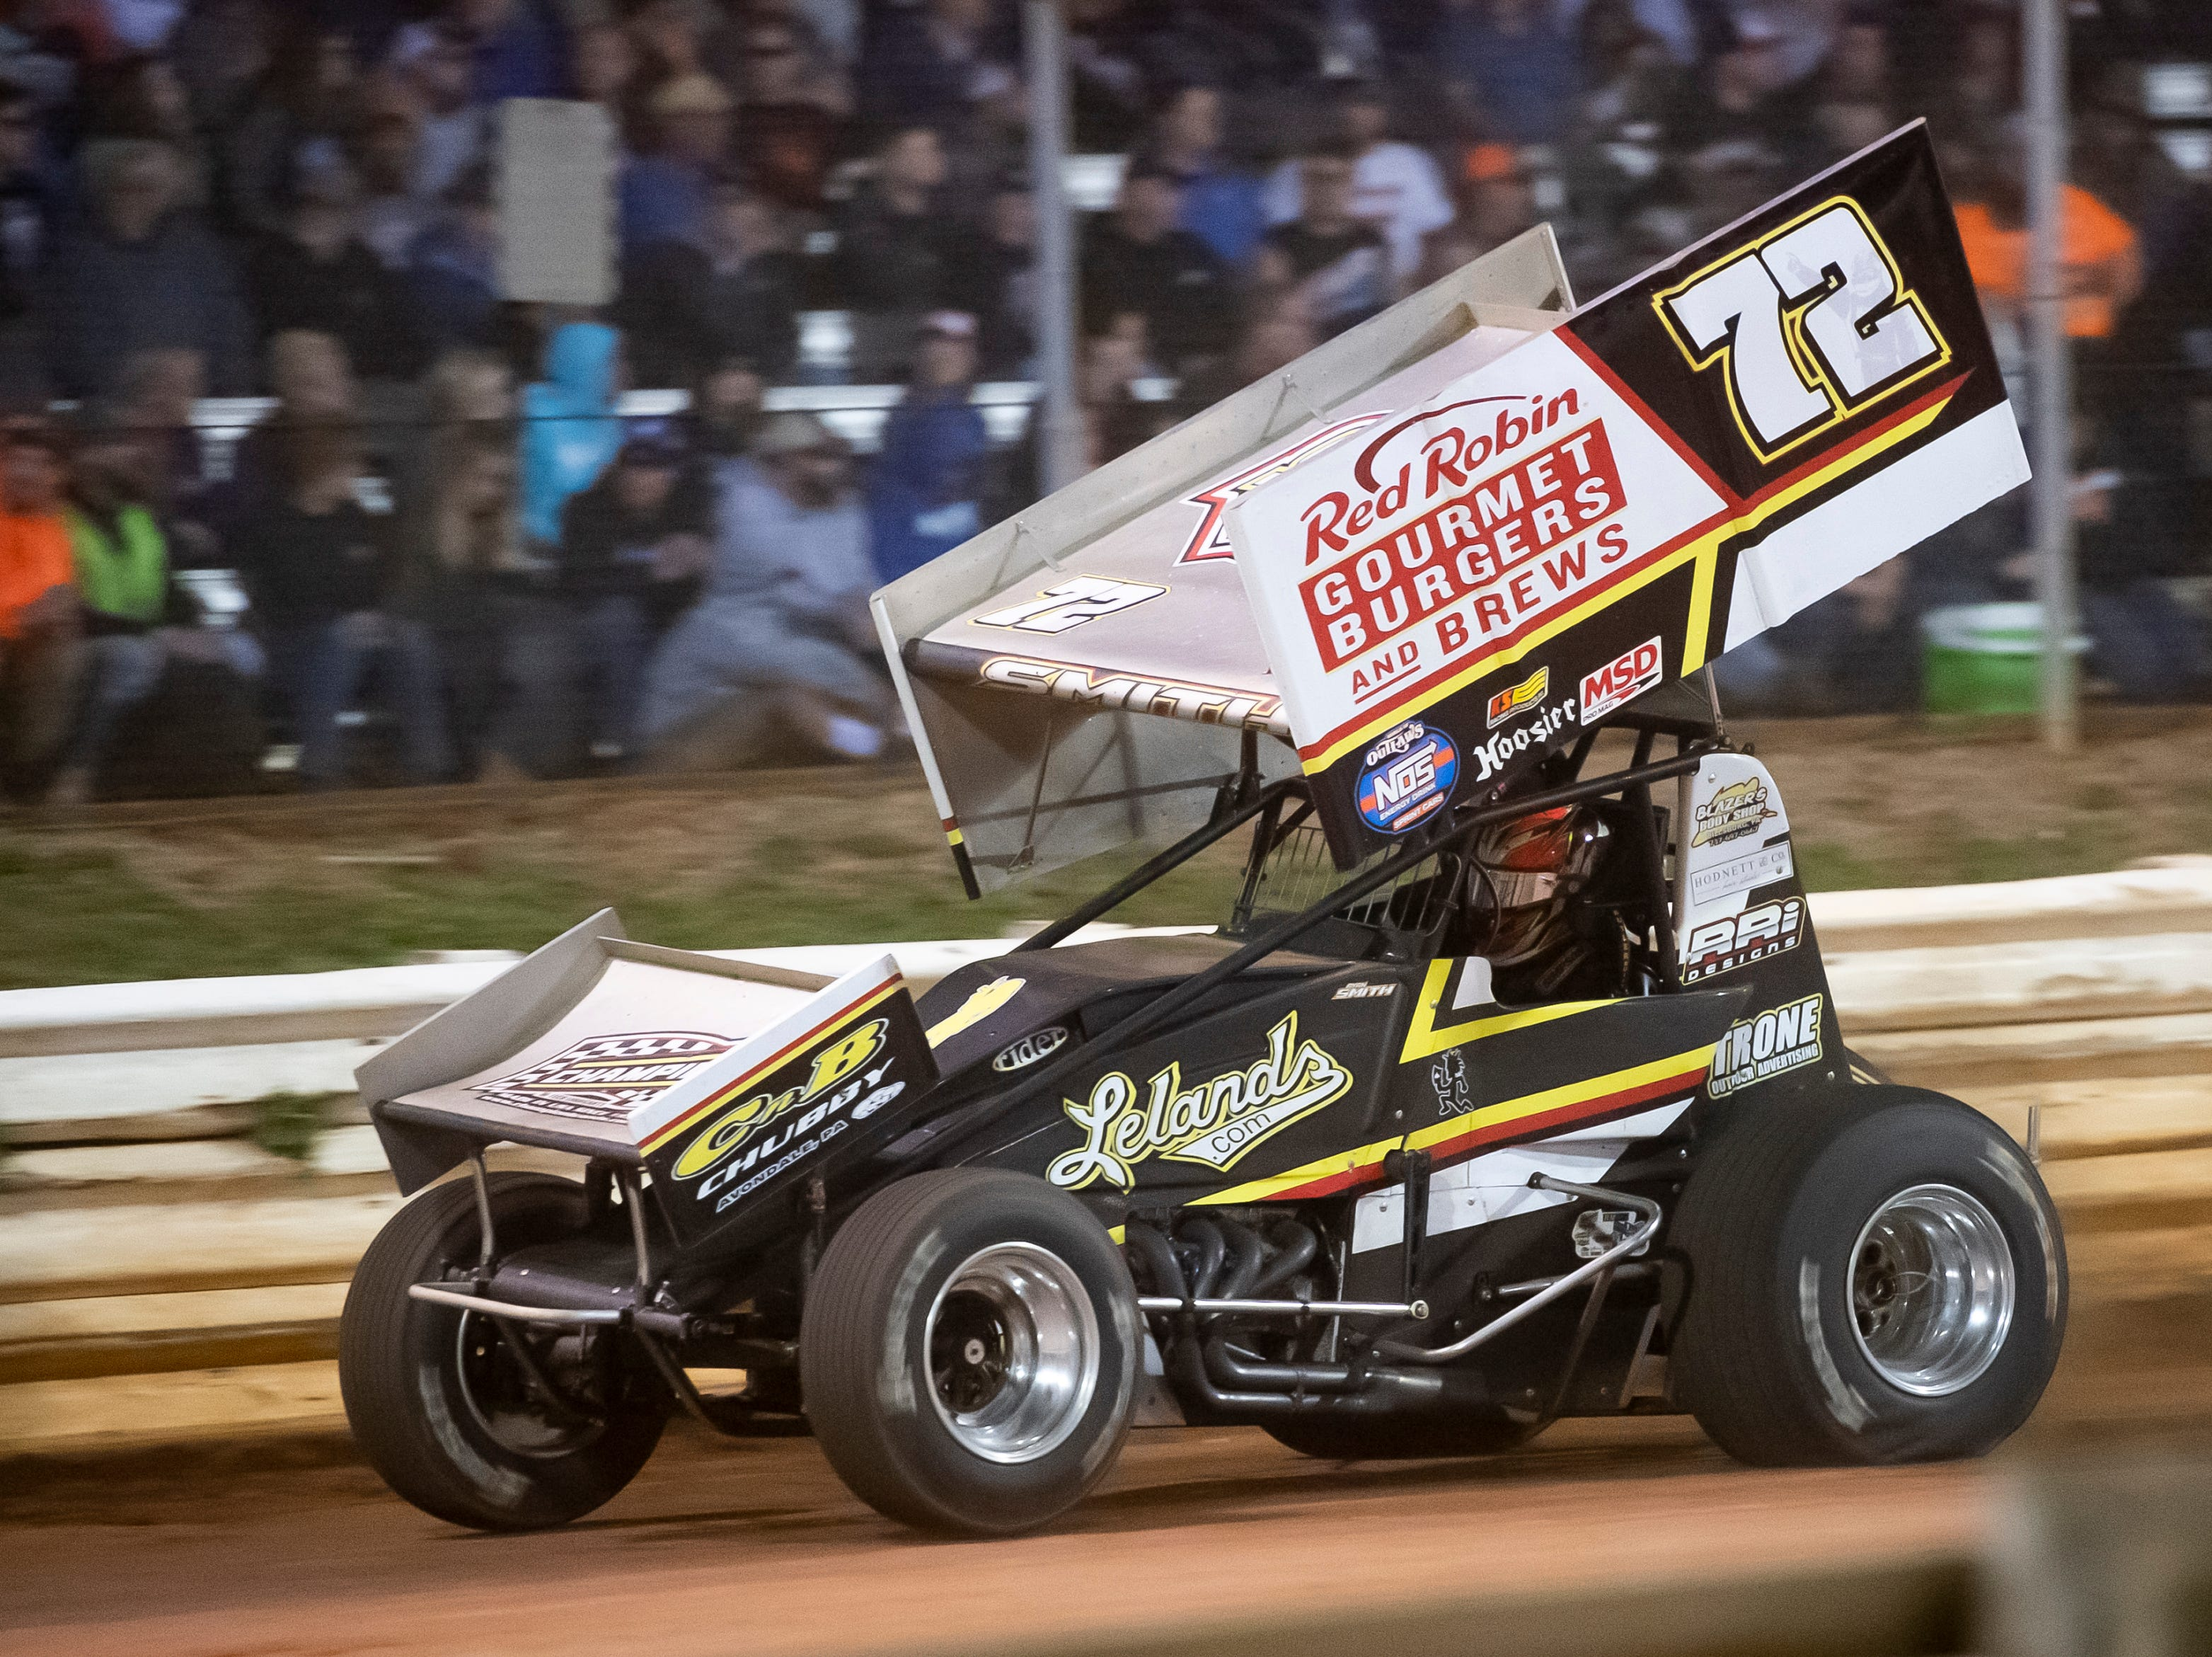 Ryan Smith races in the number 72 car during the World of Outlaws Gettysburg Clash at Lincoln Speedway in Abbottstown on Wednesday, May 15, 2019.